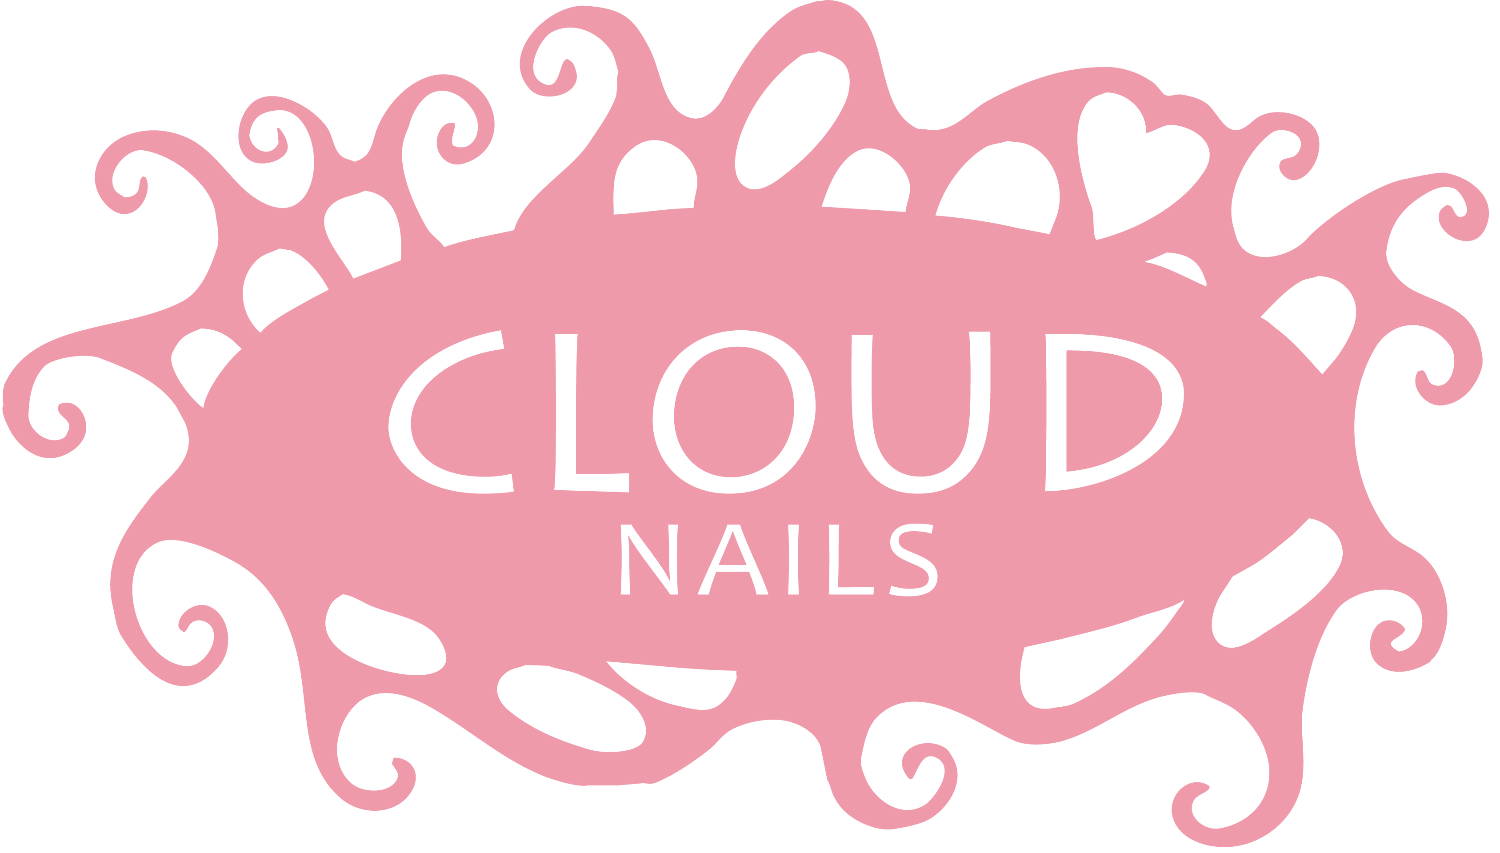 Cloud Nails - Logo